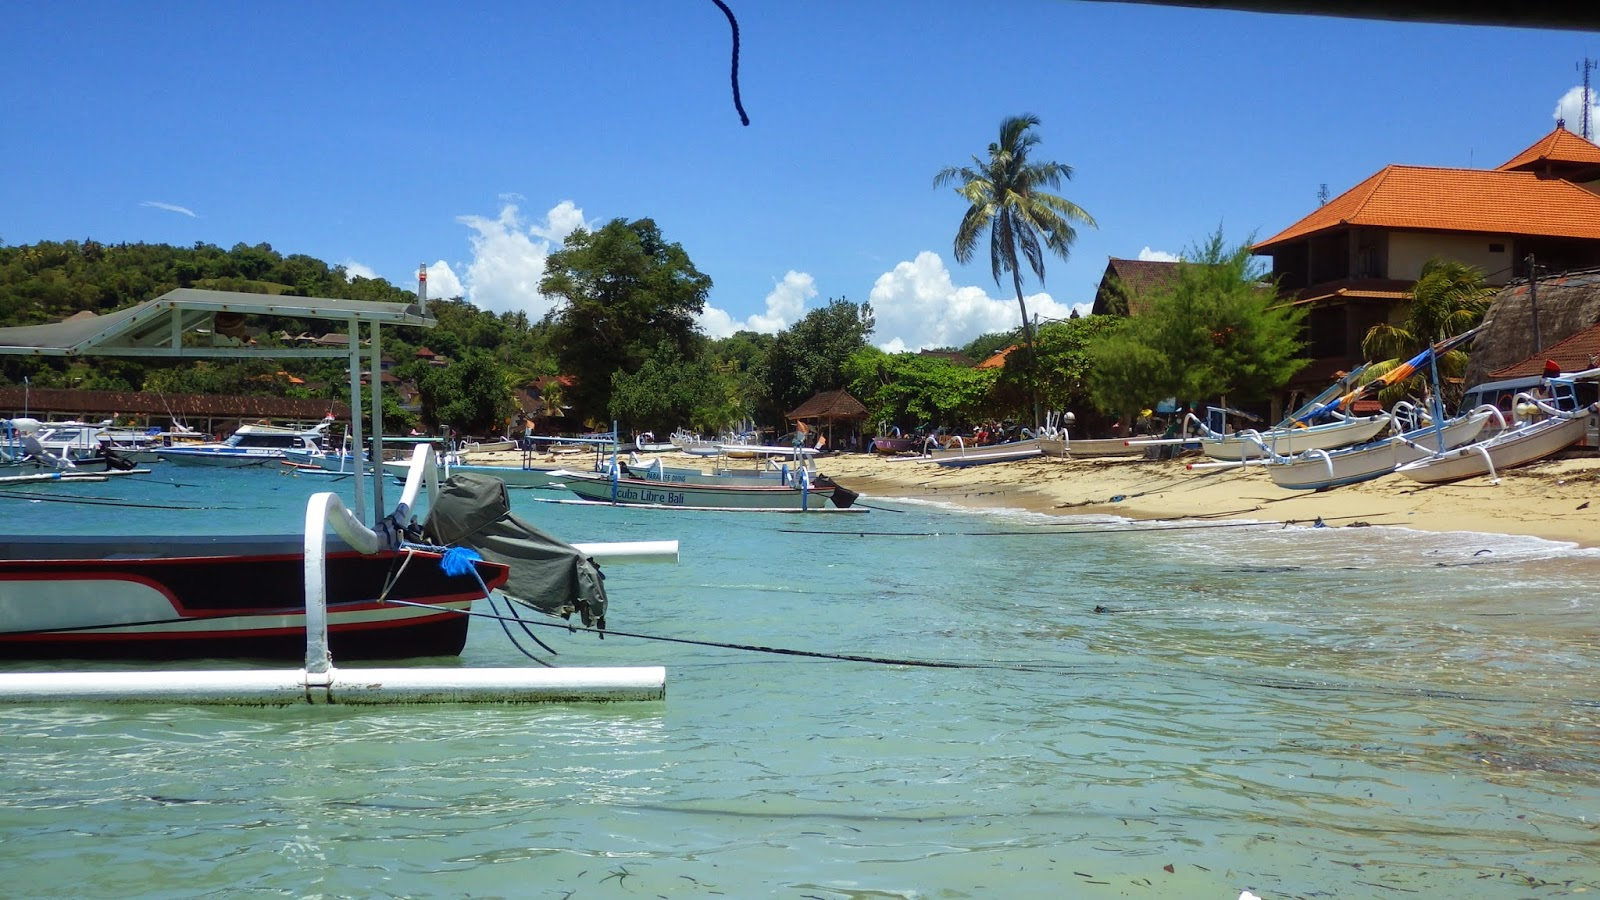 This region contains some of the most picturesque and least visited beaches on the whole island. All